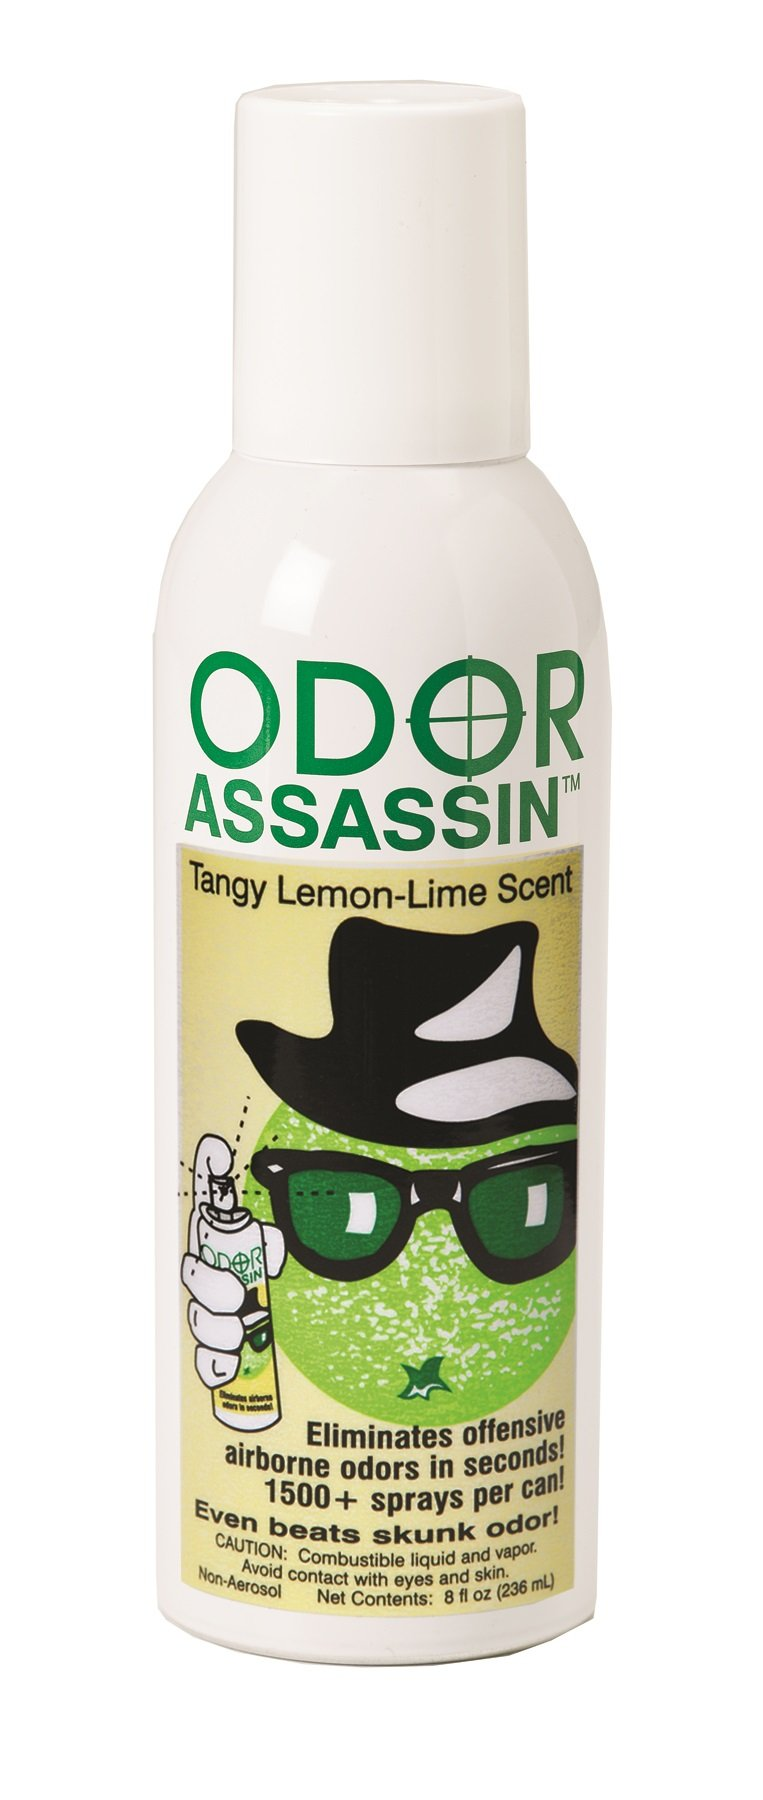 Odor Assassin Odor Control Spray, LEMON & LIME scent, Pack of 3 by JAY MFG (Image #1)